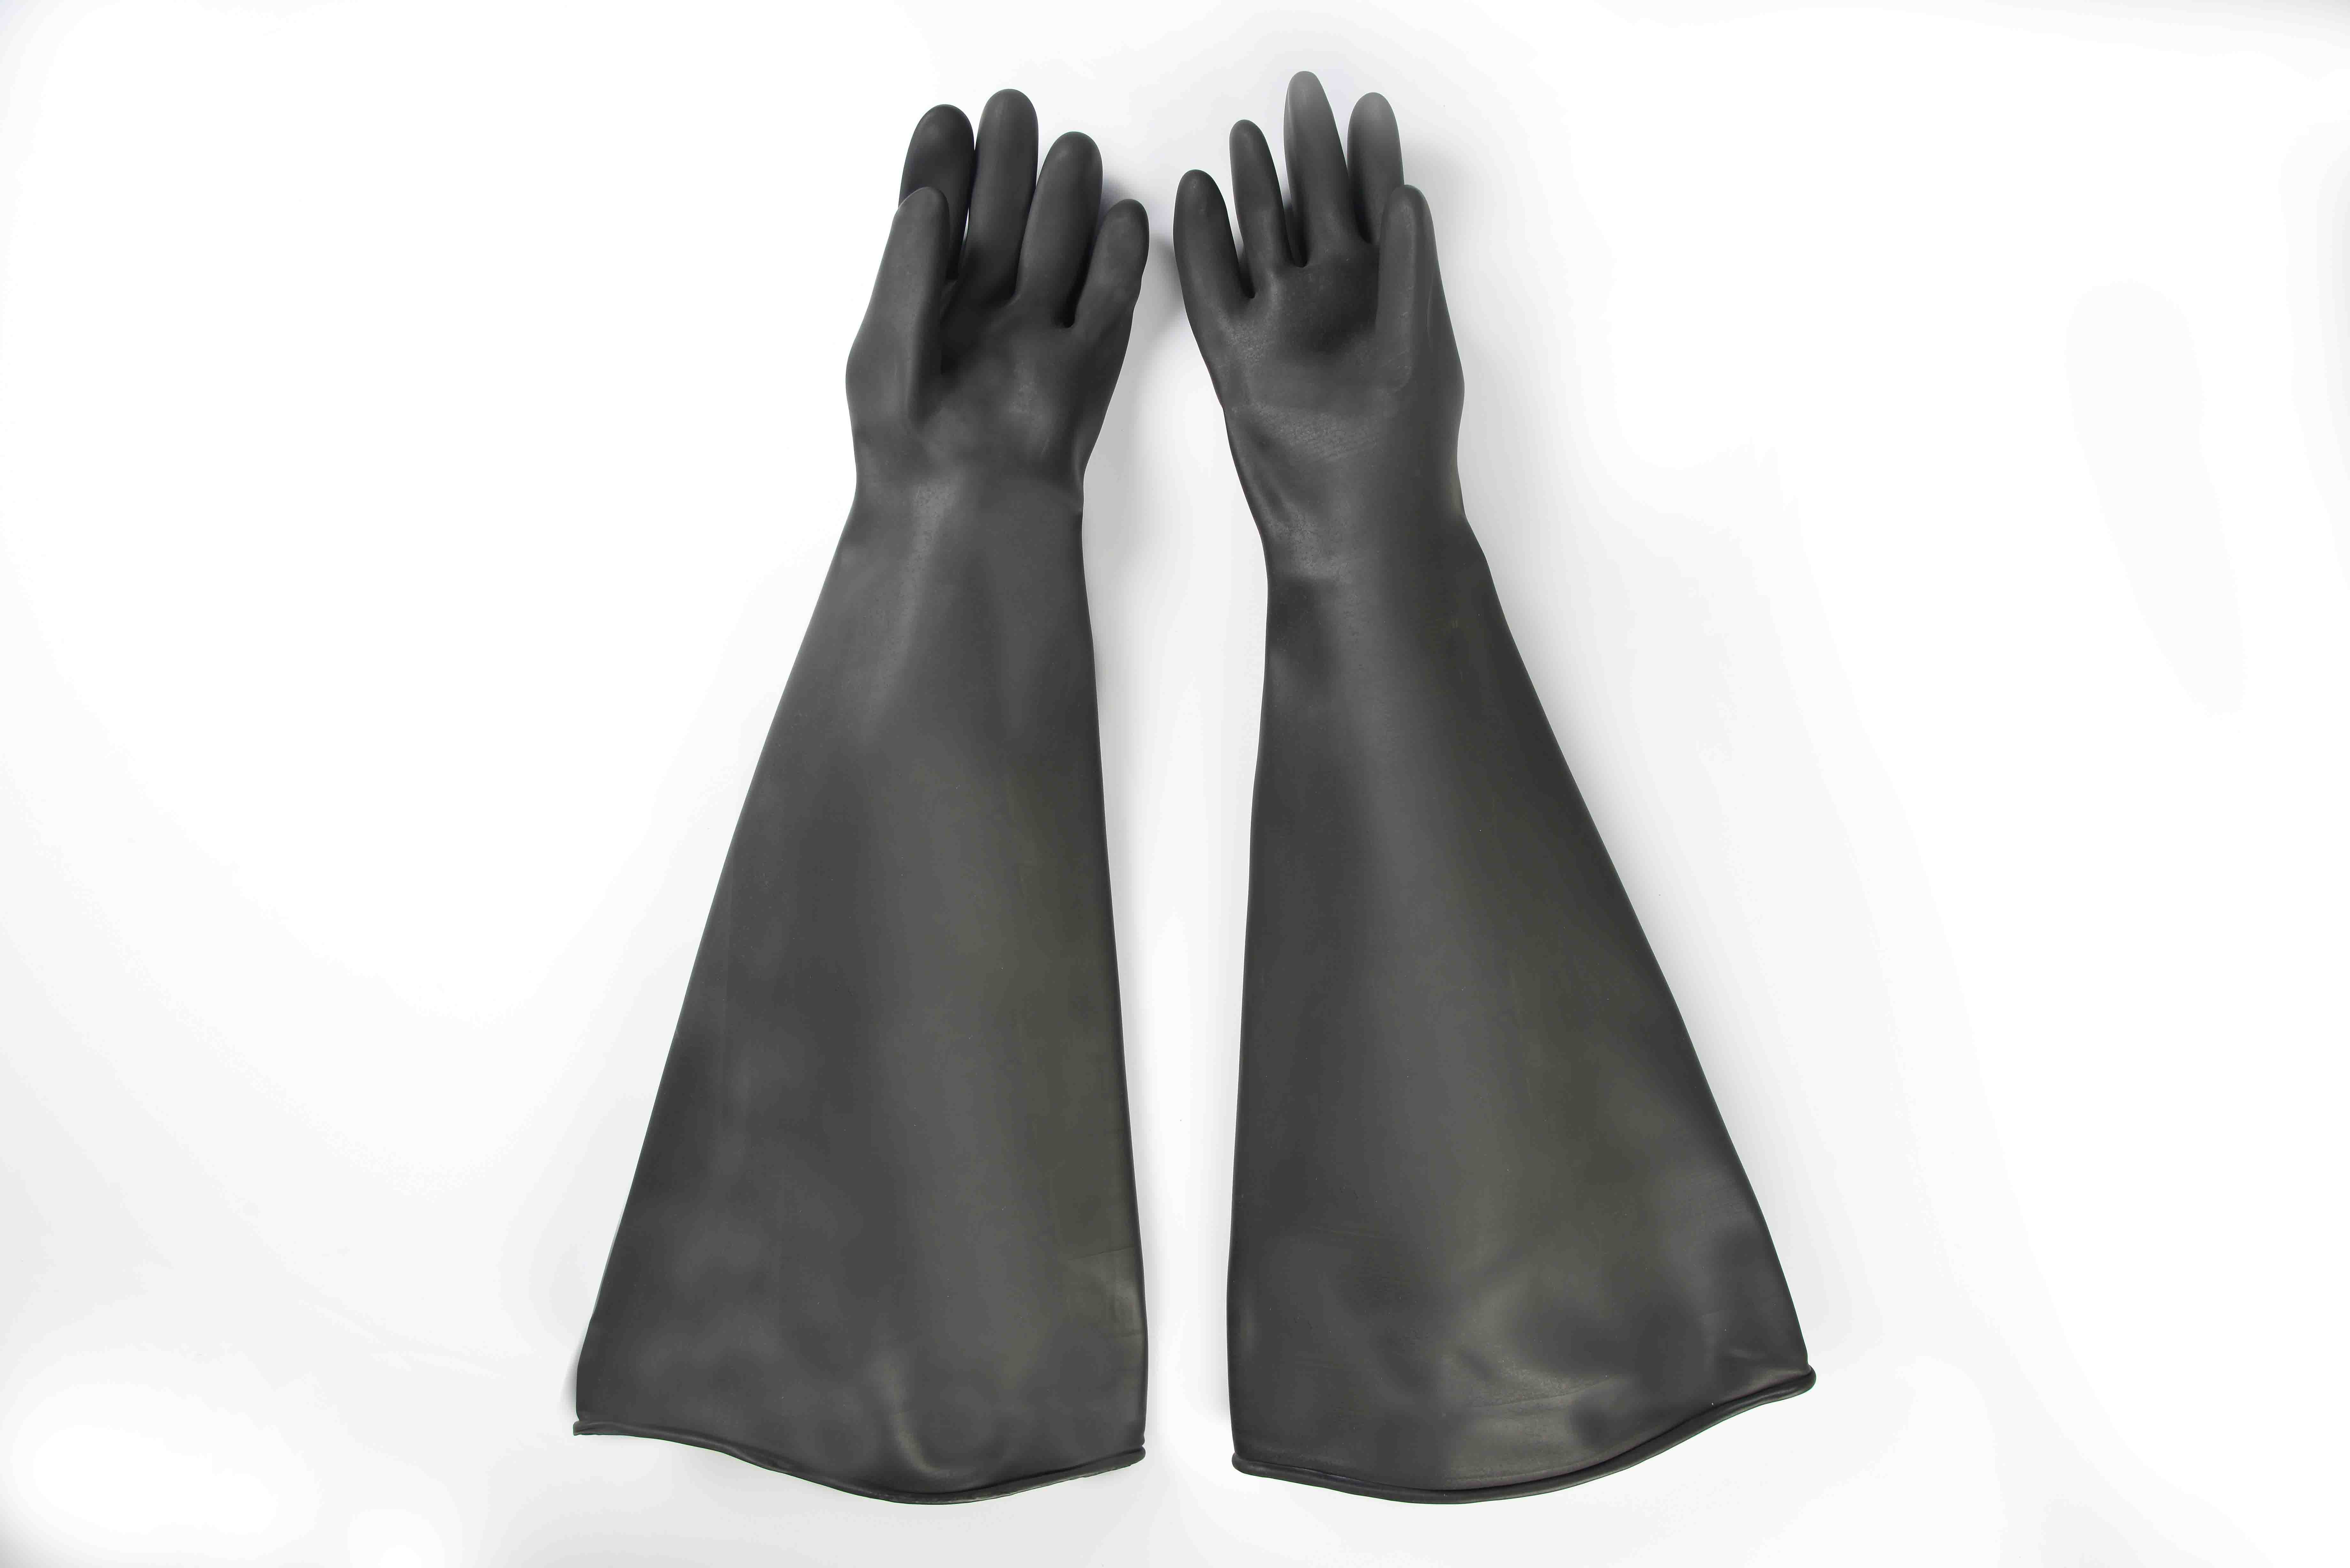 Hot sale reasonable price 26″ Industrial rubber glove-smooth finish sale to Russia